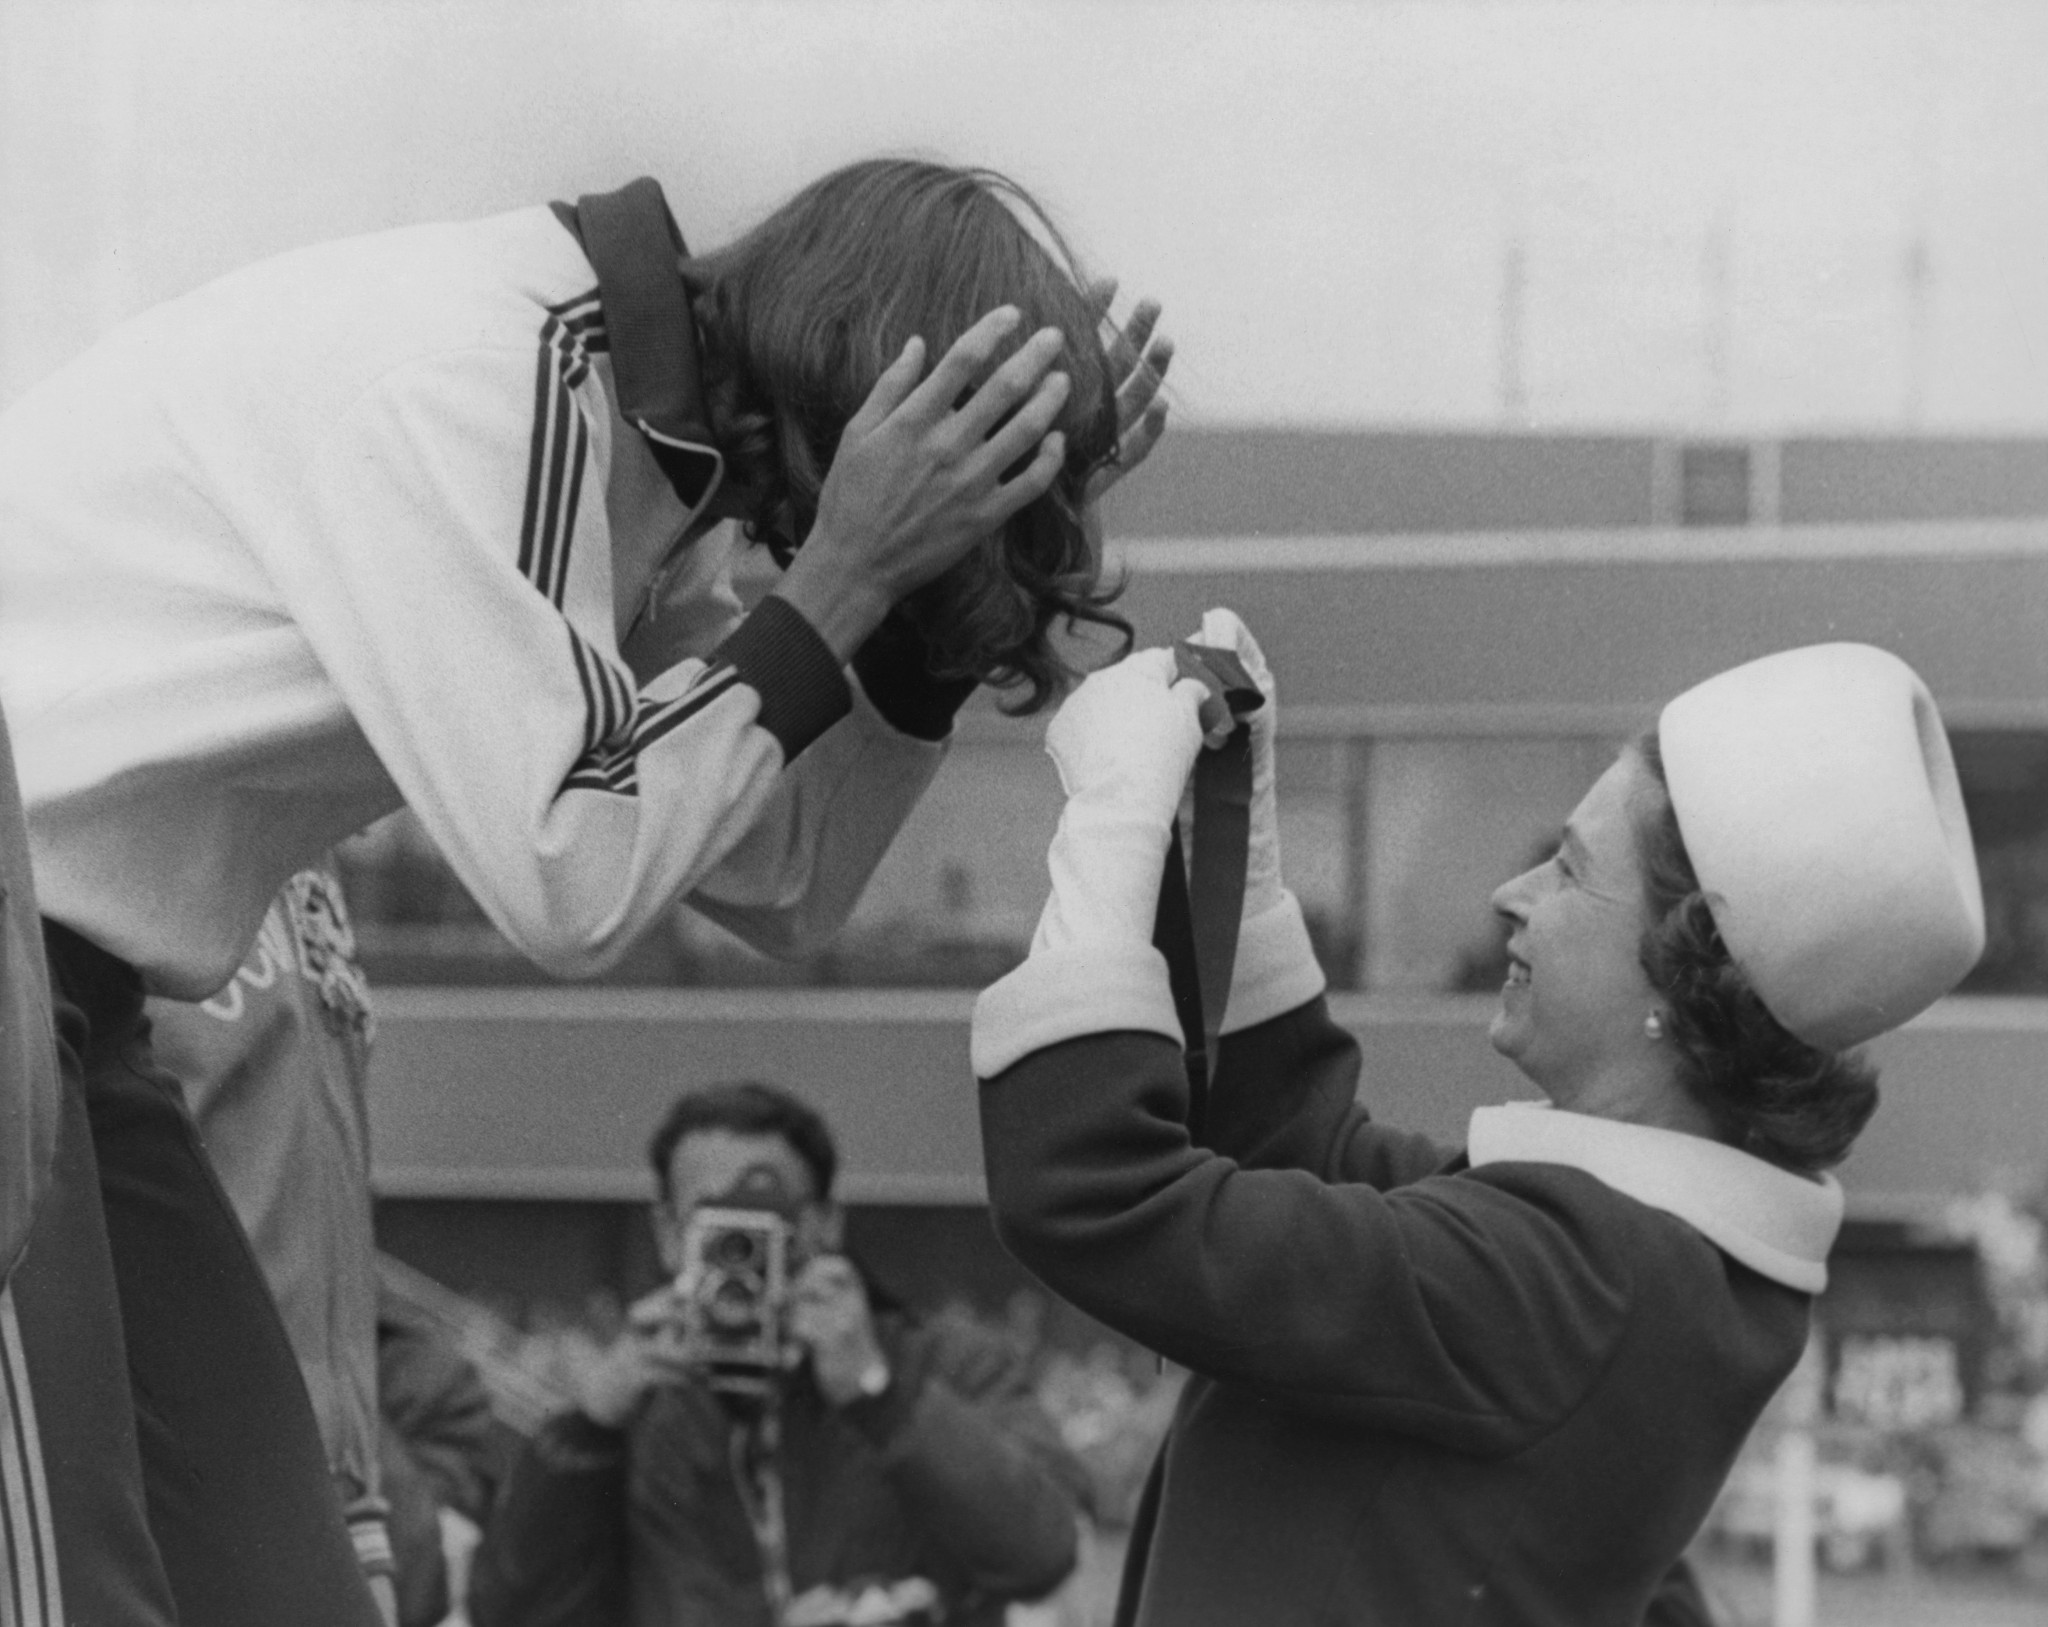 Queen Elizabeth II gets the ribbon entangled in the hair of Debbie Brill as she presents her with the high jump gold medal at Edinburgh 1970. Brill had earlier been drunk at The Queen's reception ©Getty Images